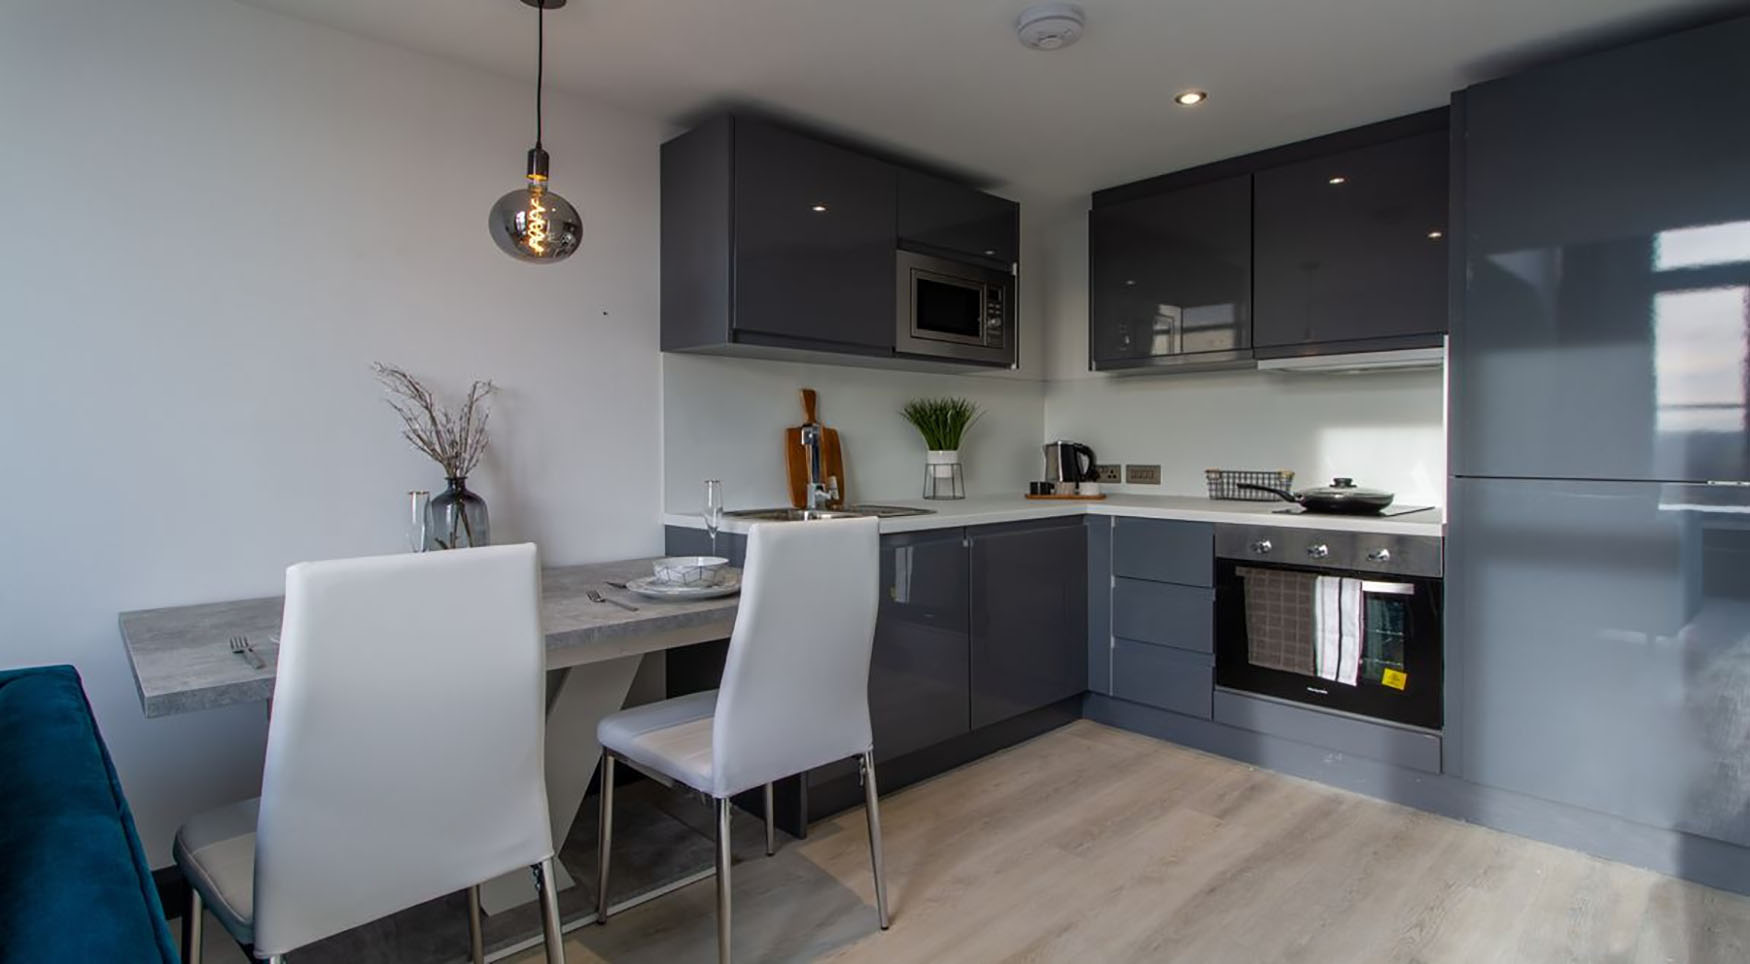 Kitchen diner at The Residence Coventry, Centre, Newmarket - Citybase Apartments